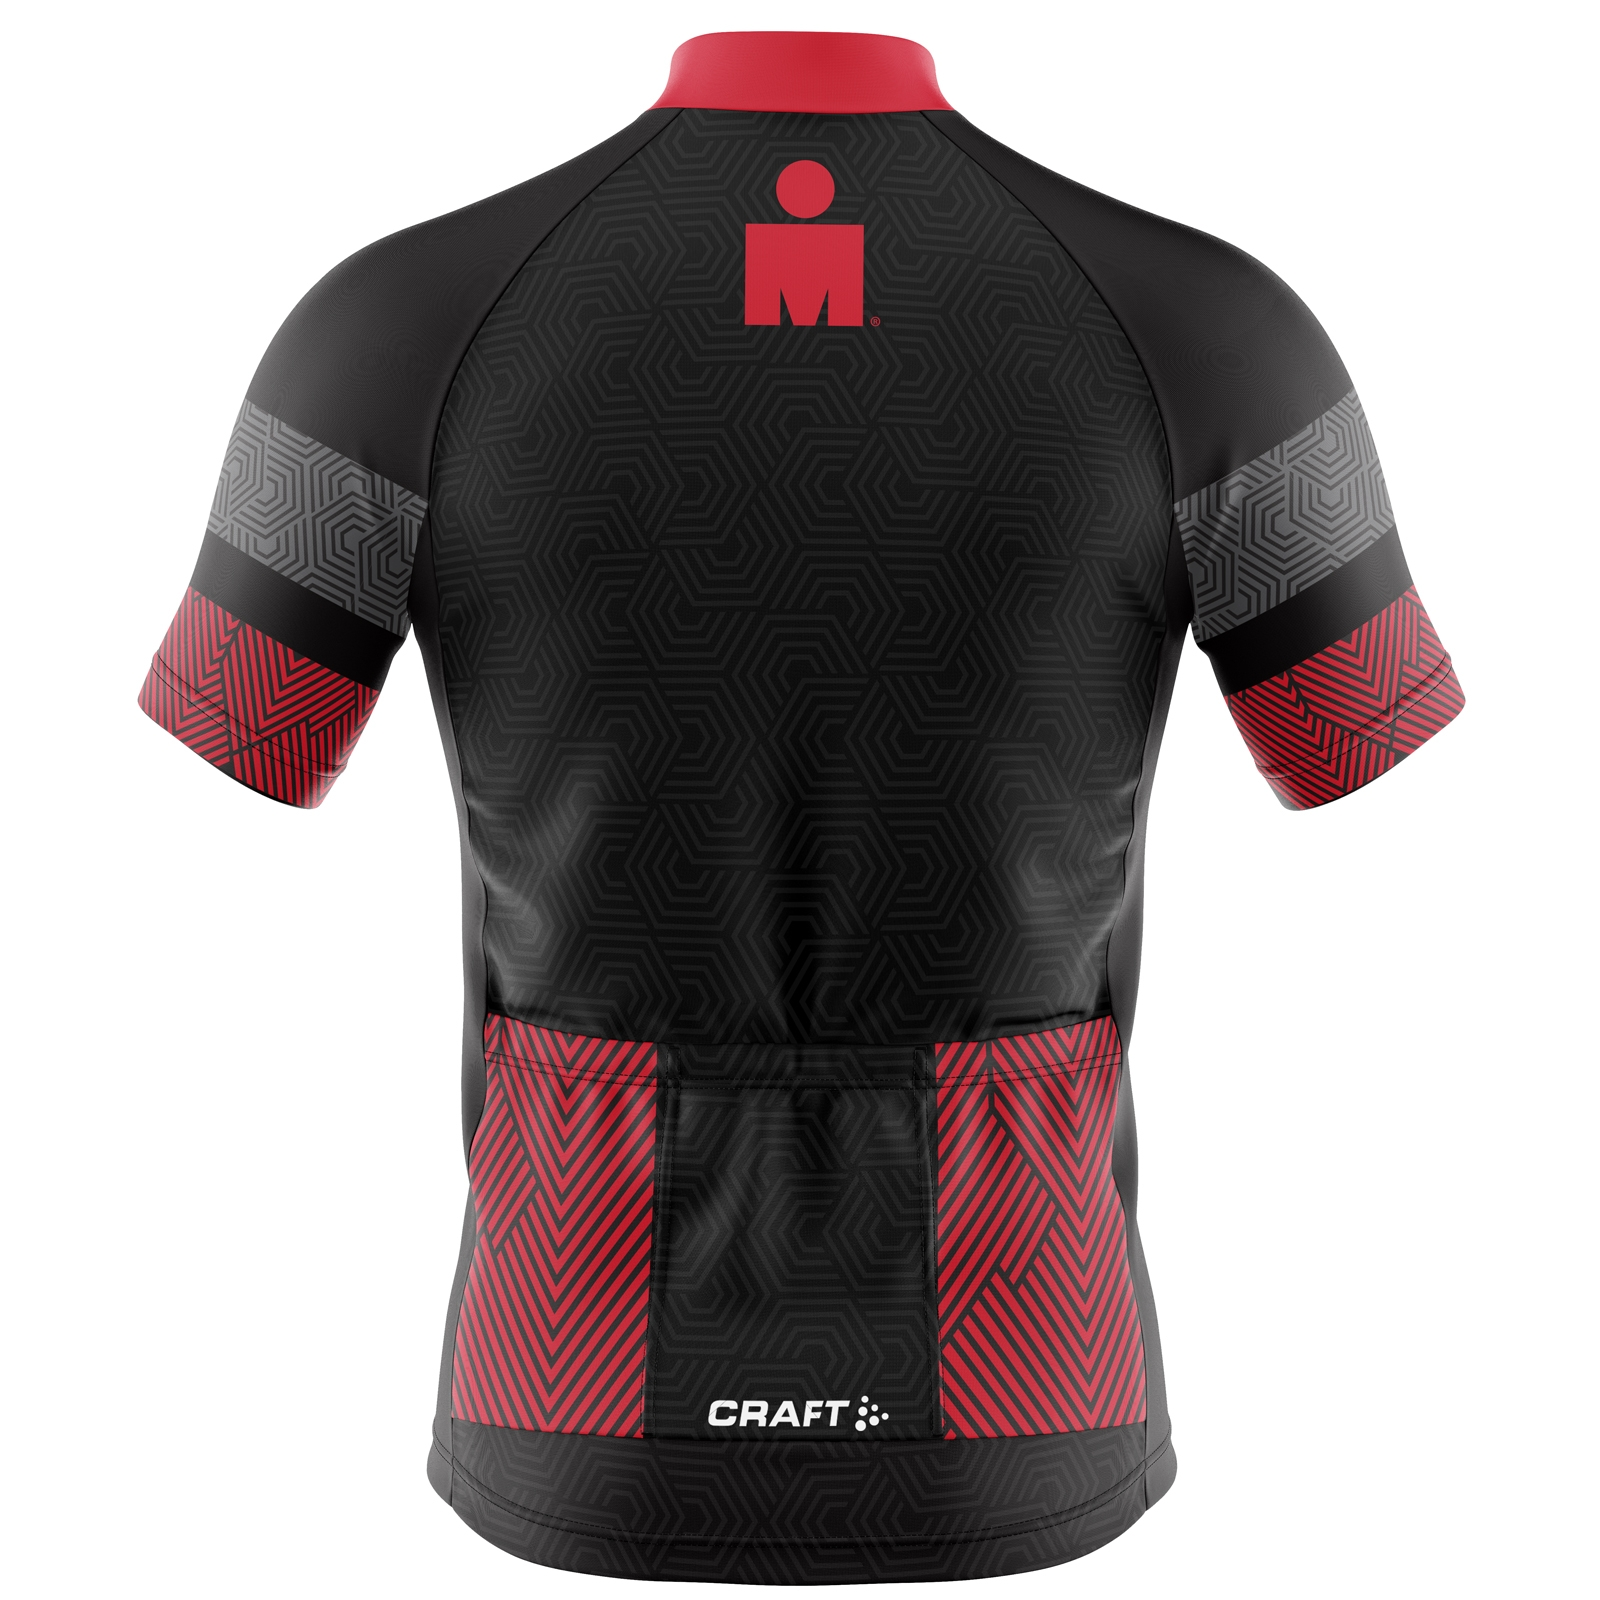 IRONMAN Craft Men's Cycle Jersey-Black/Red